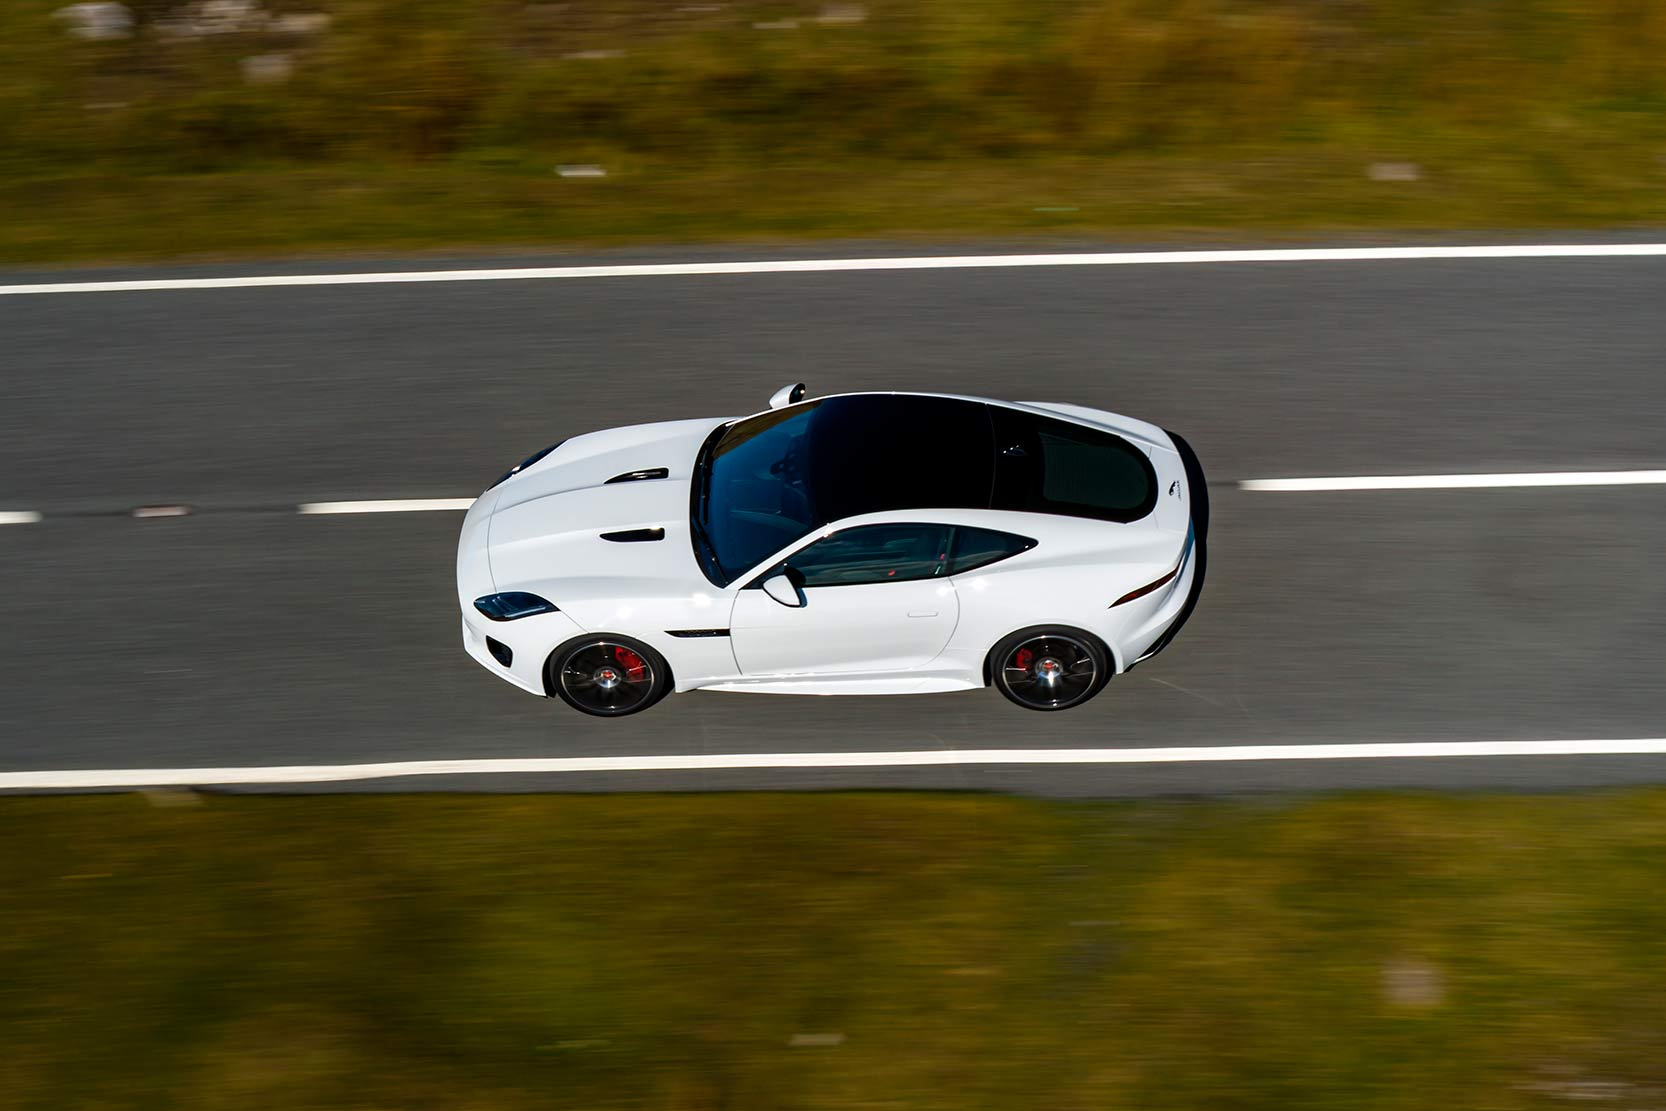 Exterieur_Jaguar-F-Type-Chequered-Flag_11